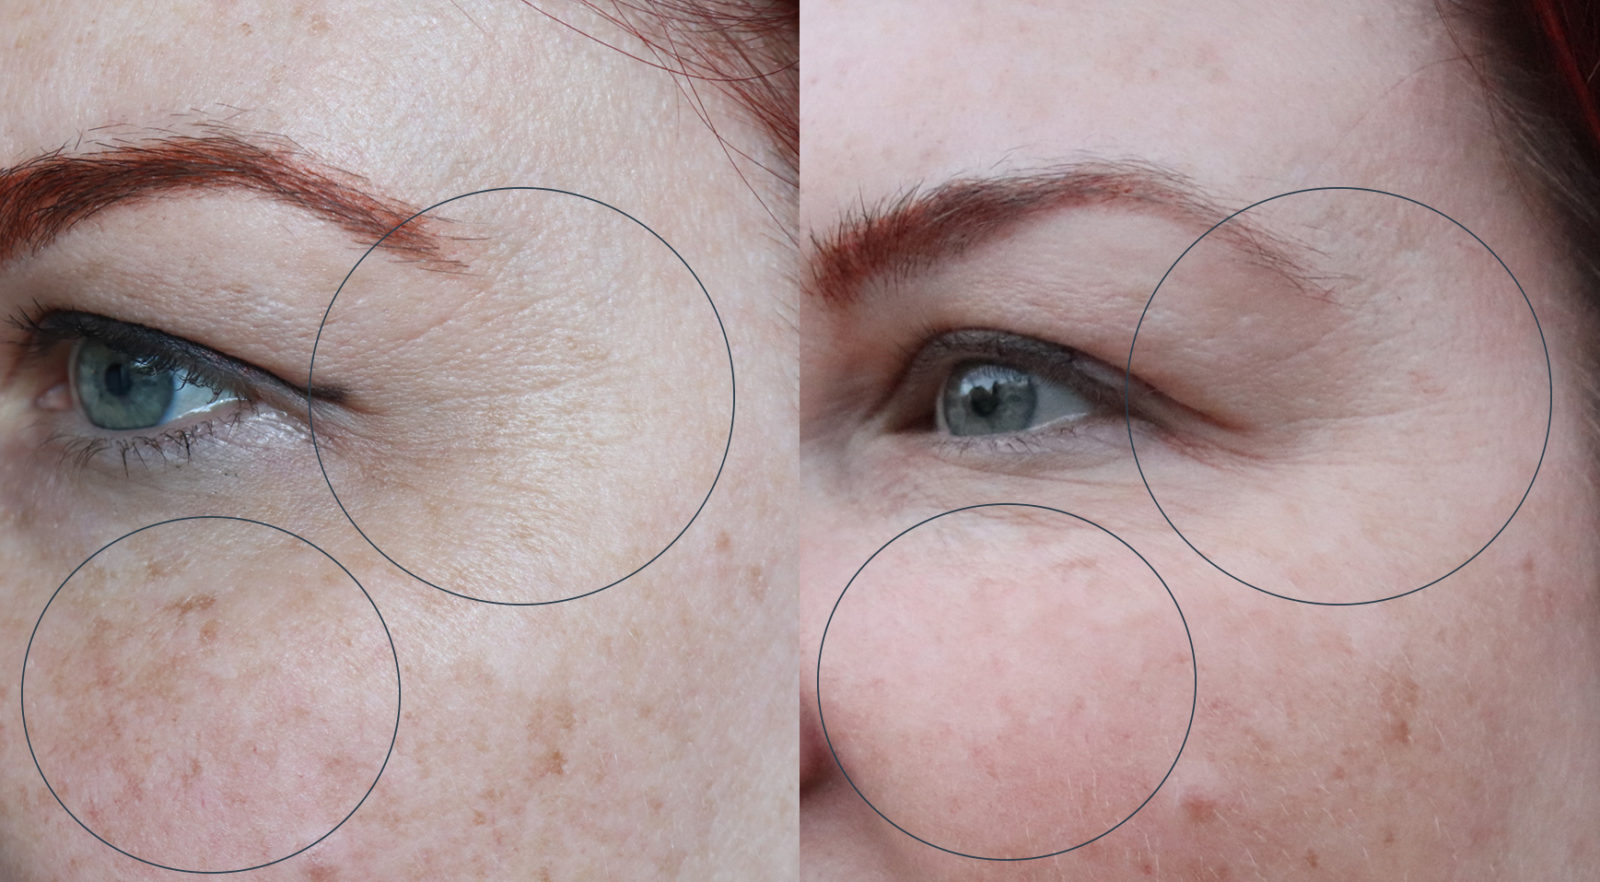 Skin Laundry Ultra Fractional Laser Treatment Review - Before and After